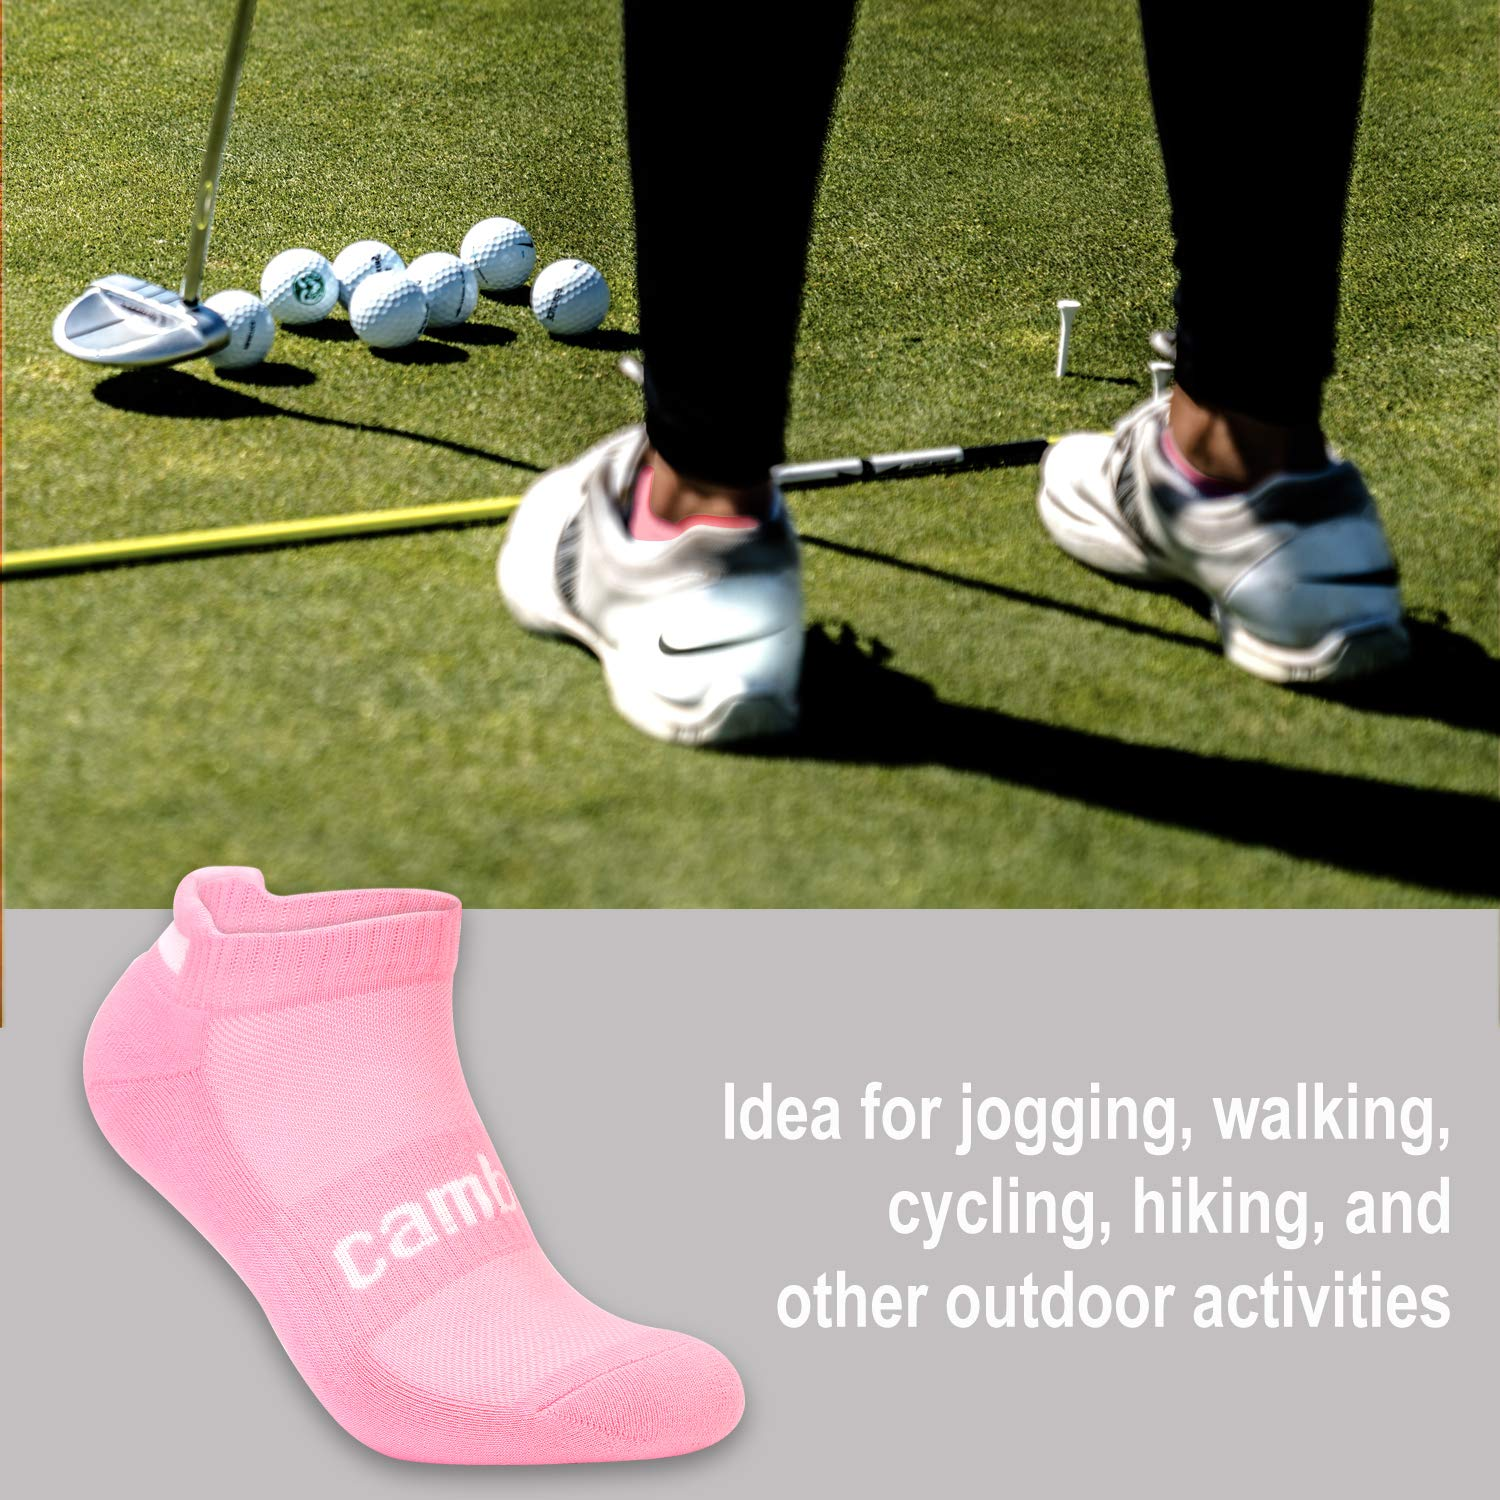 CAMBIVO Womens Socks Walking 3 Pairs Cushioning Low Cut Ankle Socks for Running Jogging and Great for Daily Wear